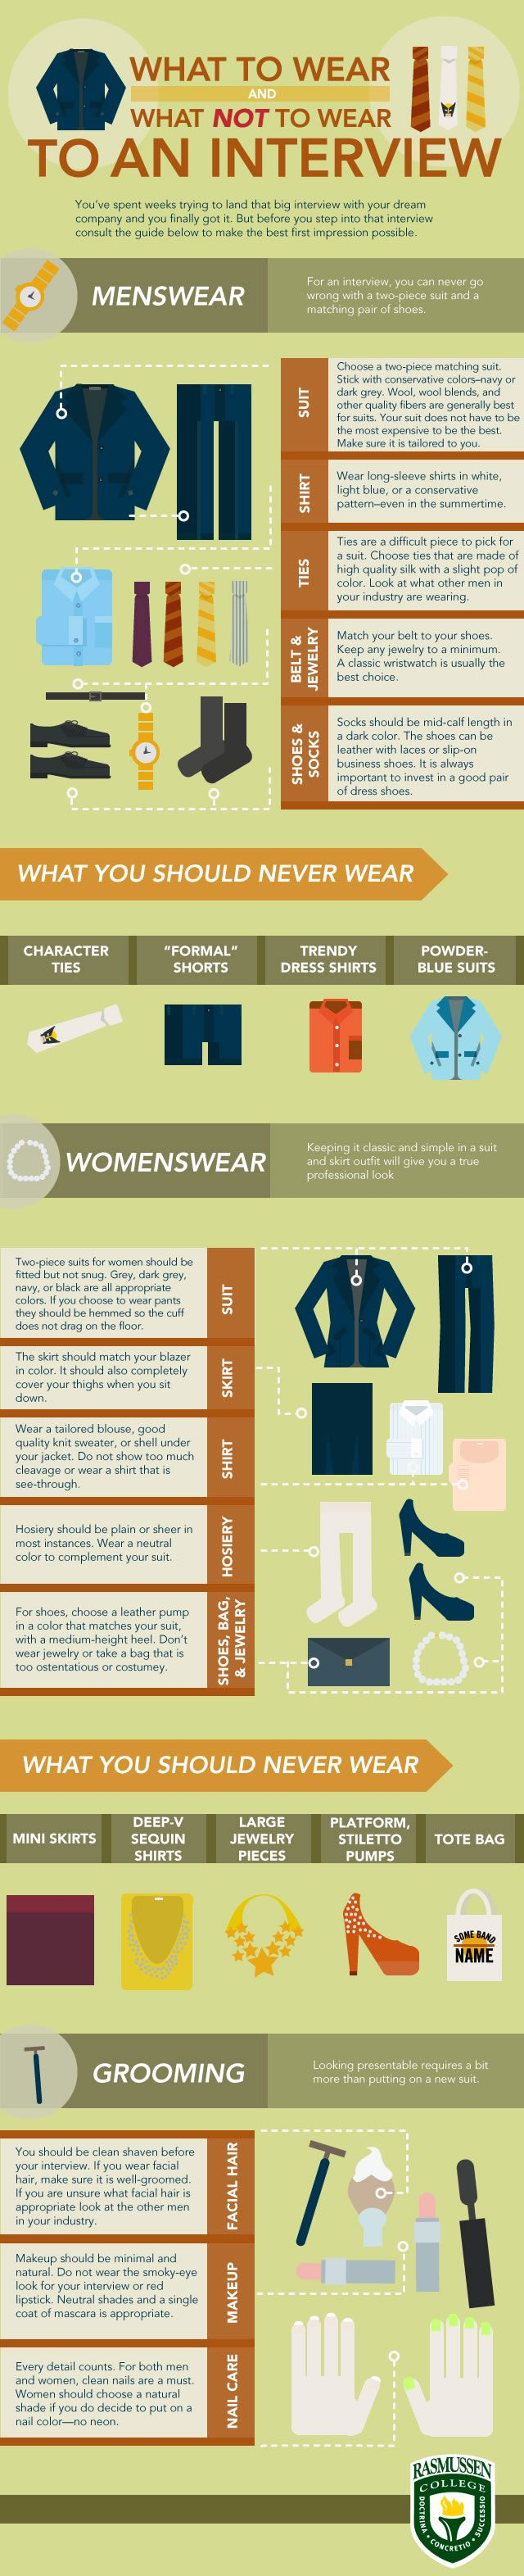 What to wear and what not to wear to an interview #infographic